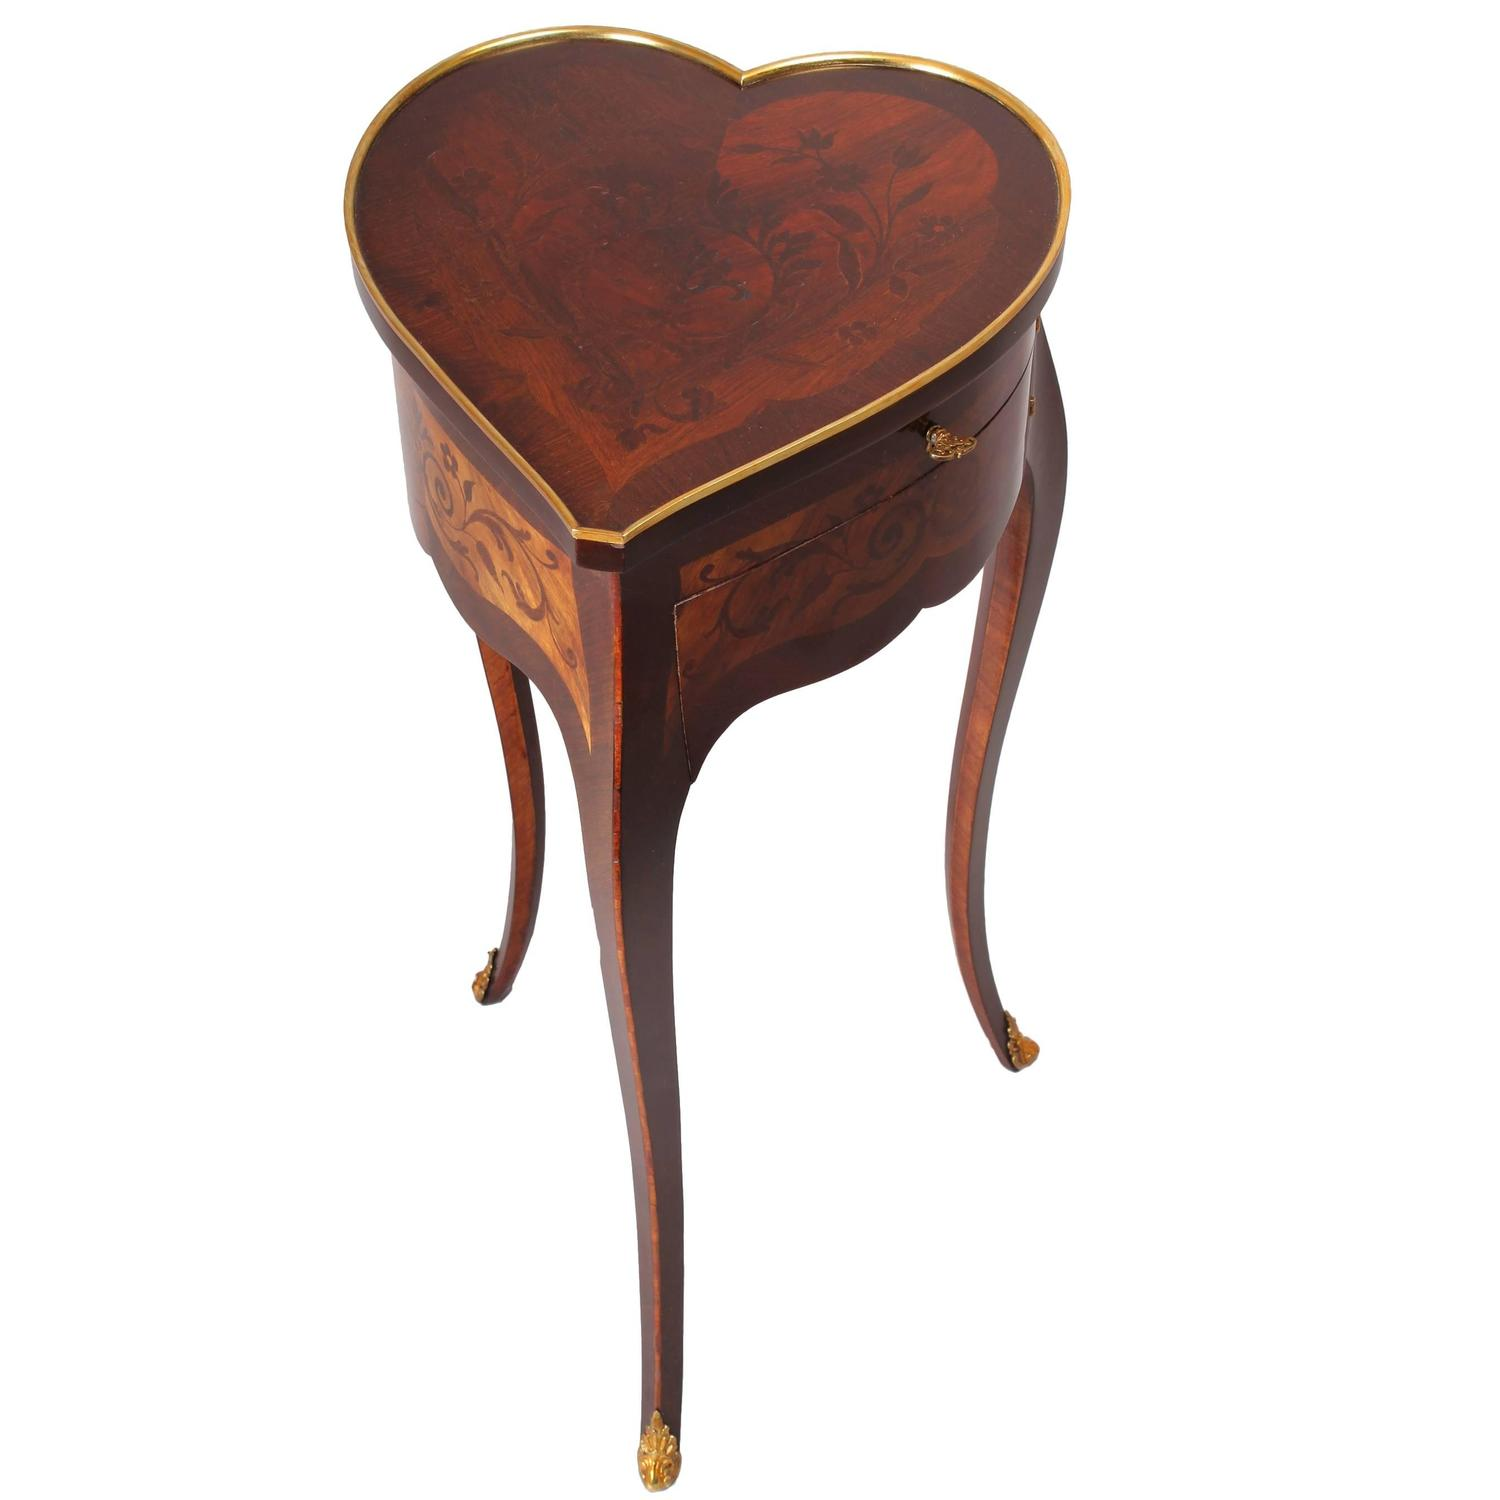 weird shaped chairs swivel chair meaning unusual late 19th century french heart work table